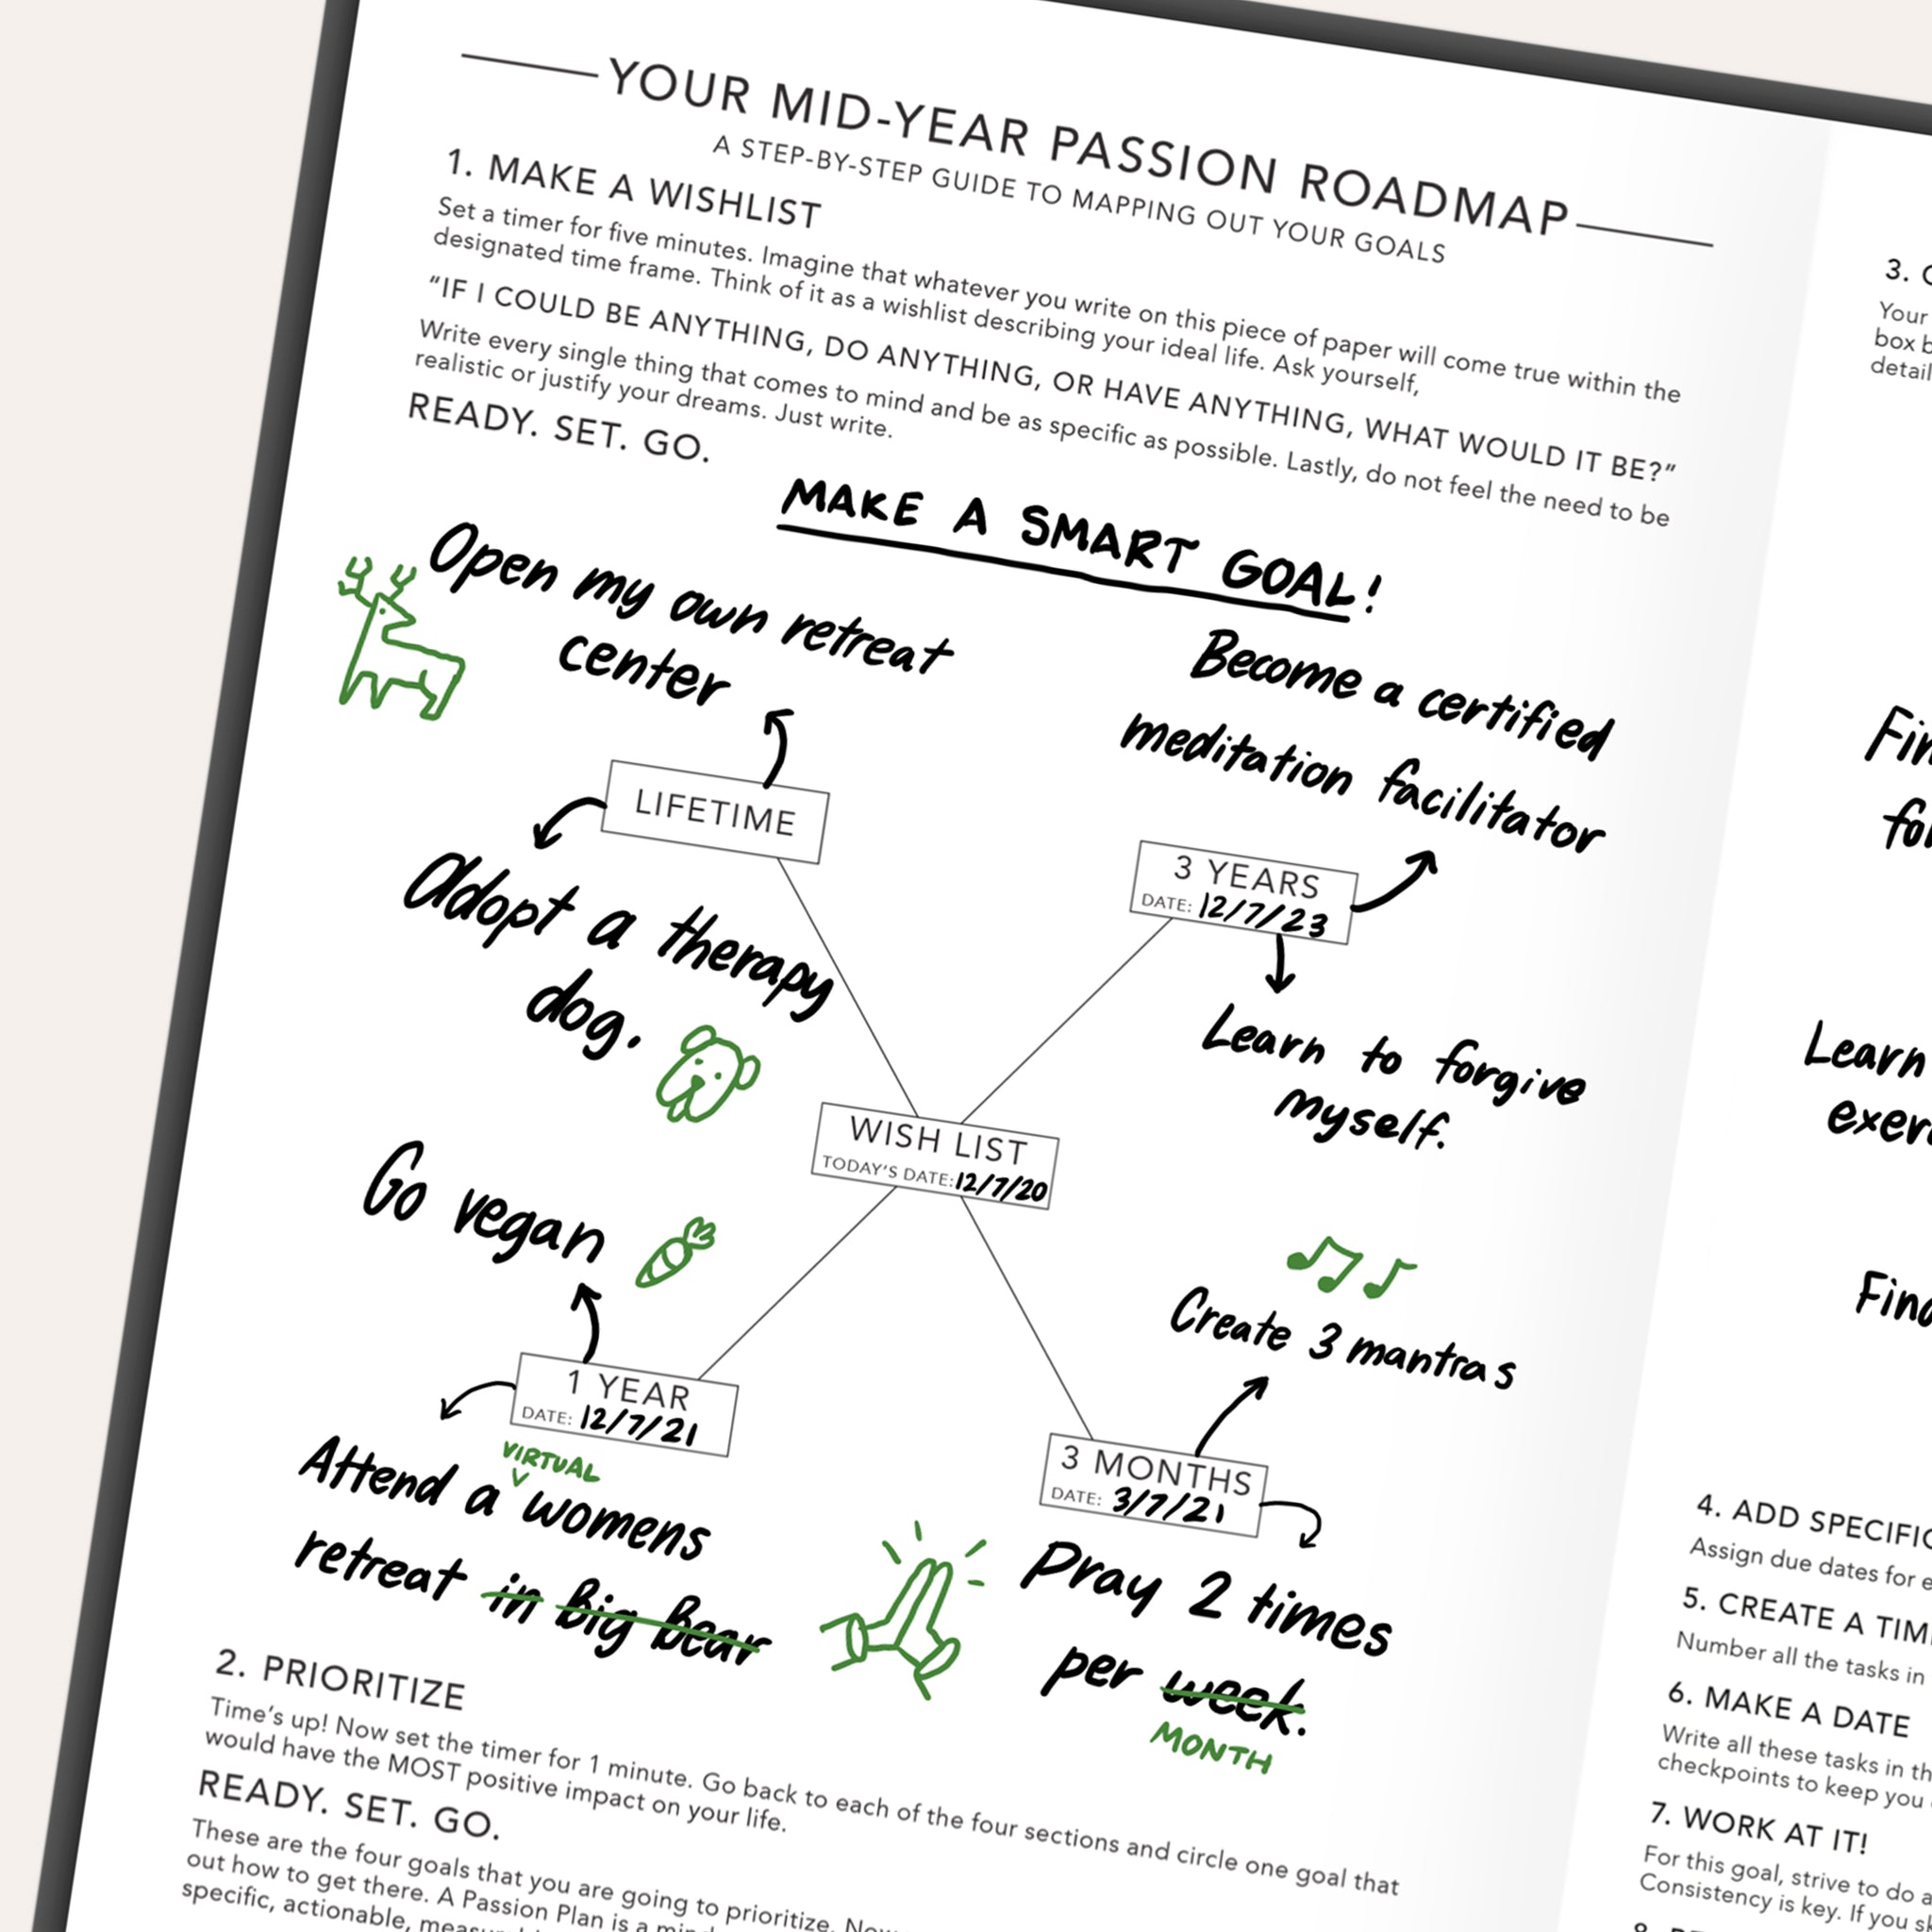 Passion Roadmap Exercise